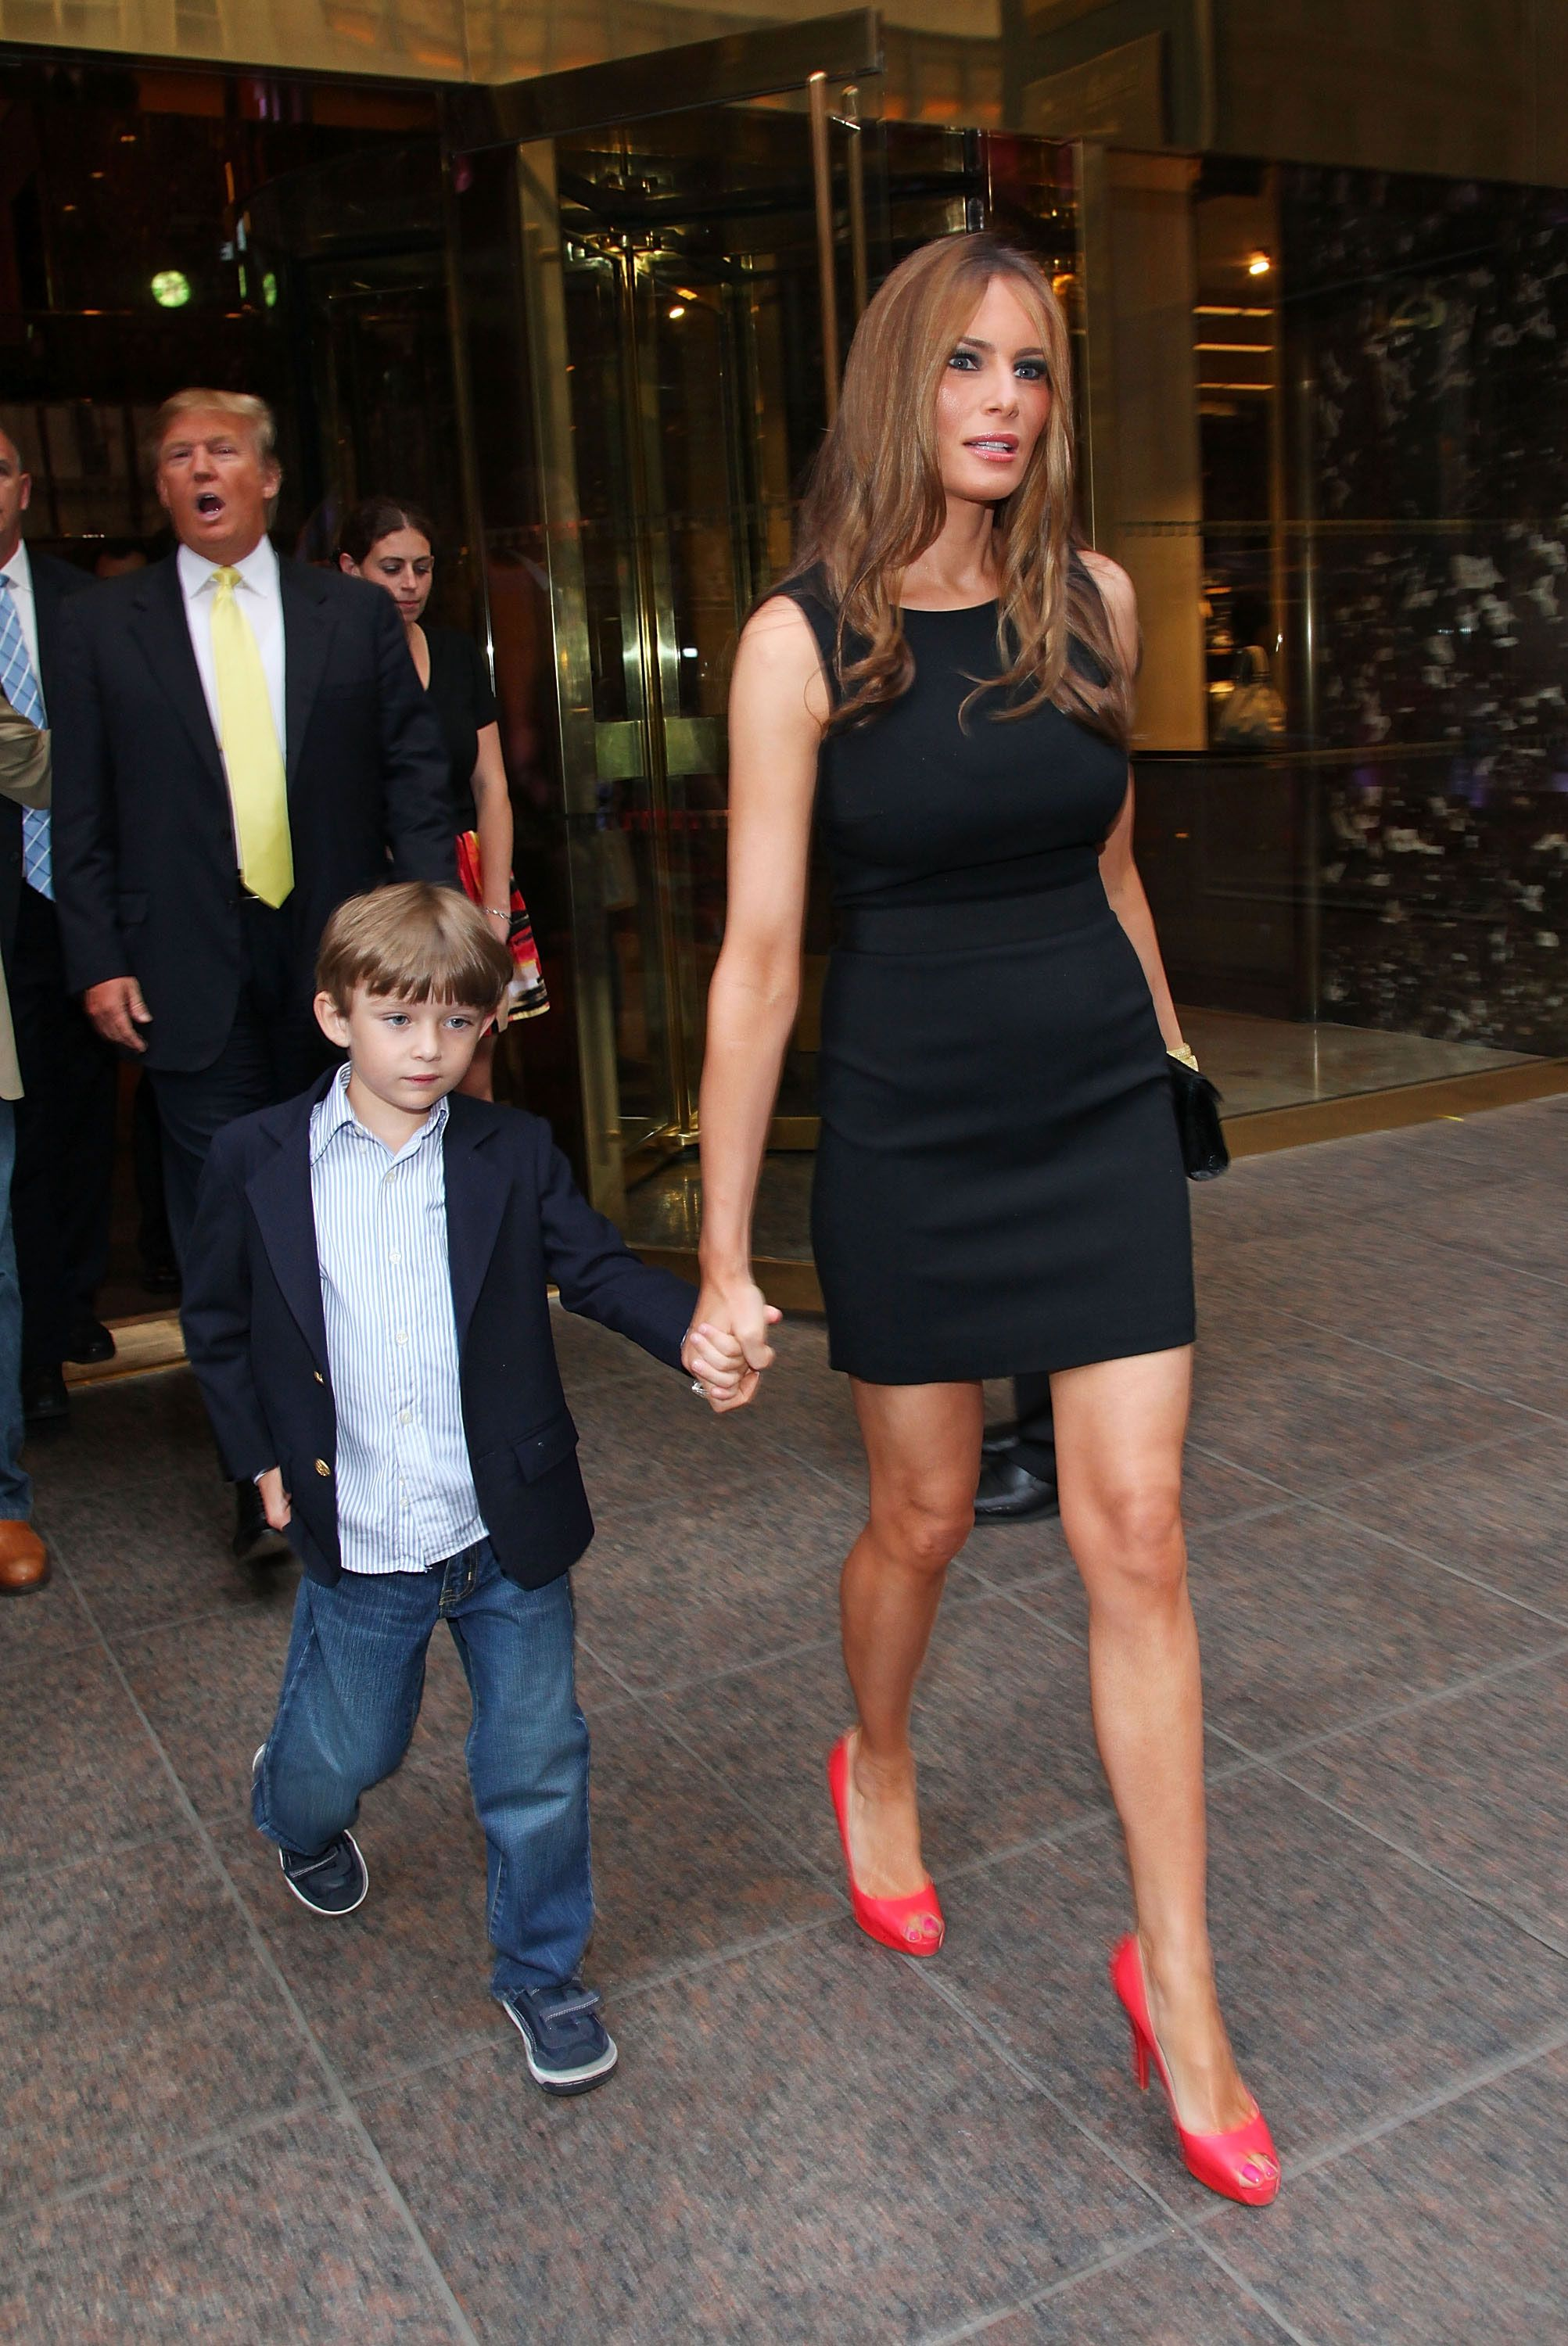 Melania Trump S Son 7 Gets Slathered In Caviar The Cut